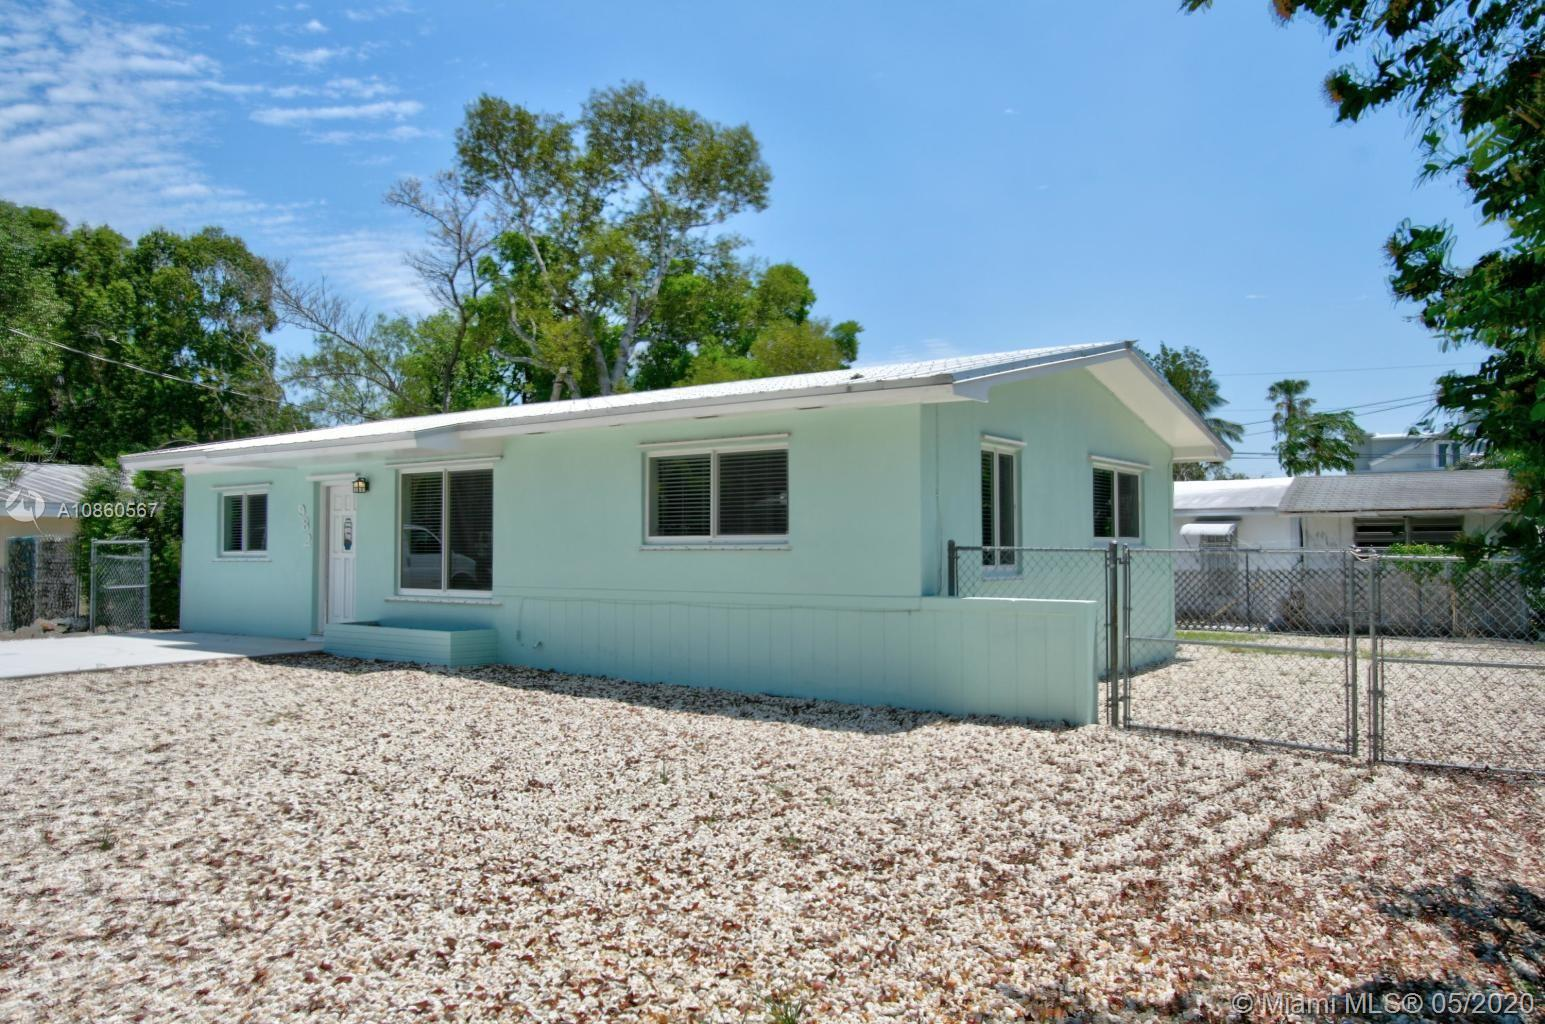 982 Oleander Rd, Key Largo in Monroe County County, FL 33037 Home for Sale